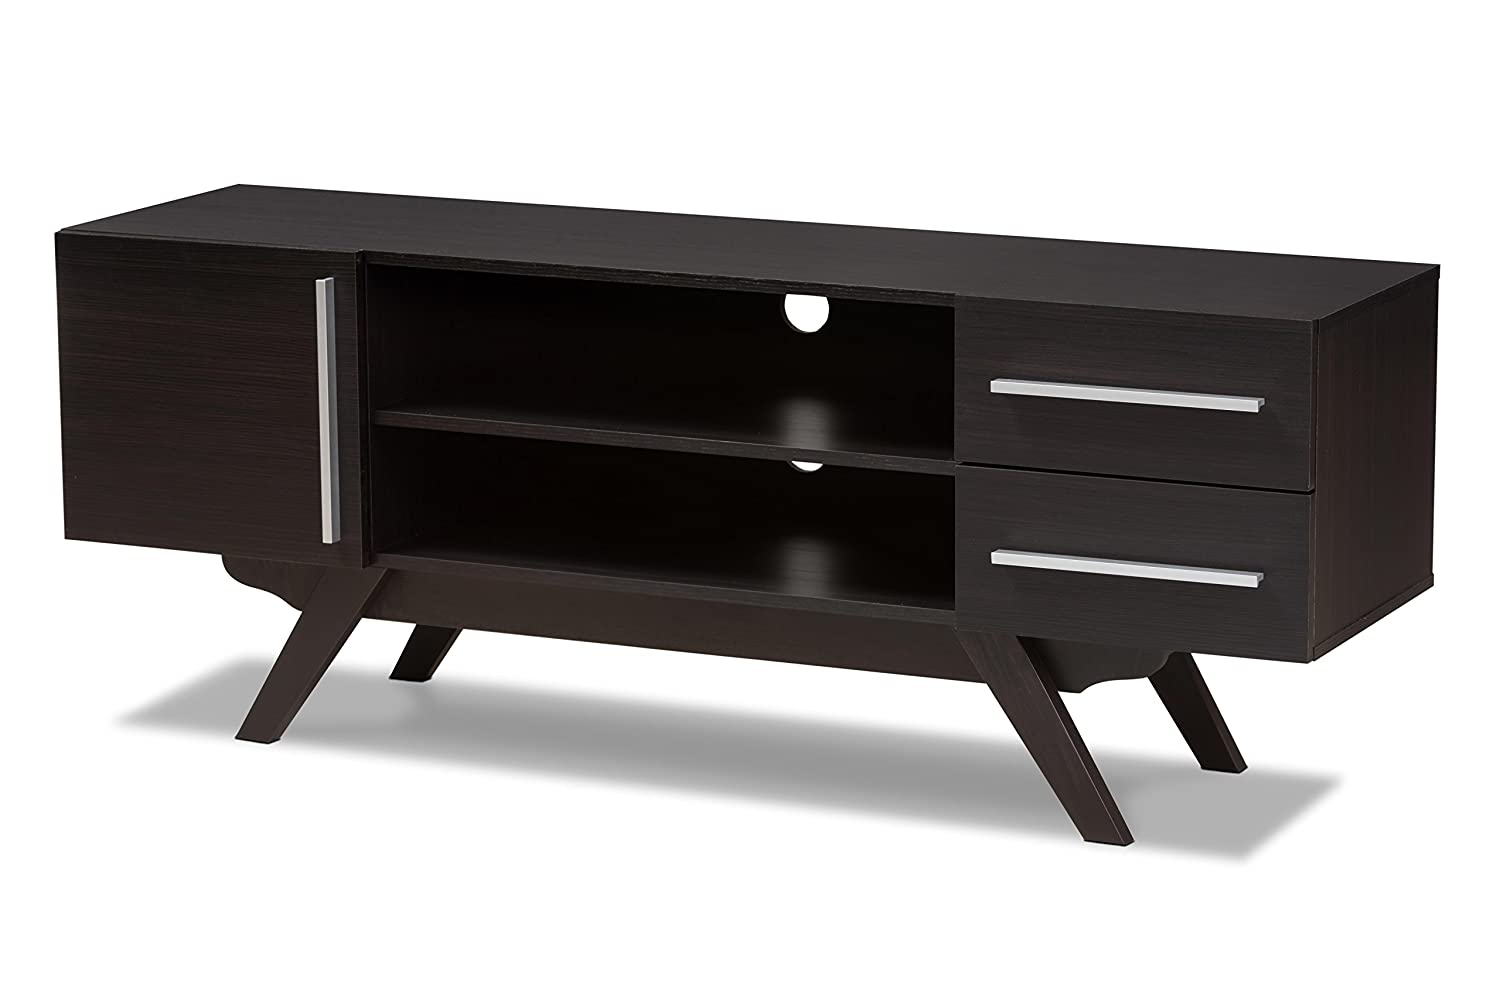 Baxton Studio Aulden Mid-Century Modern Dark Brown Finished Wood TV Stand